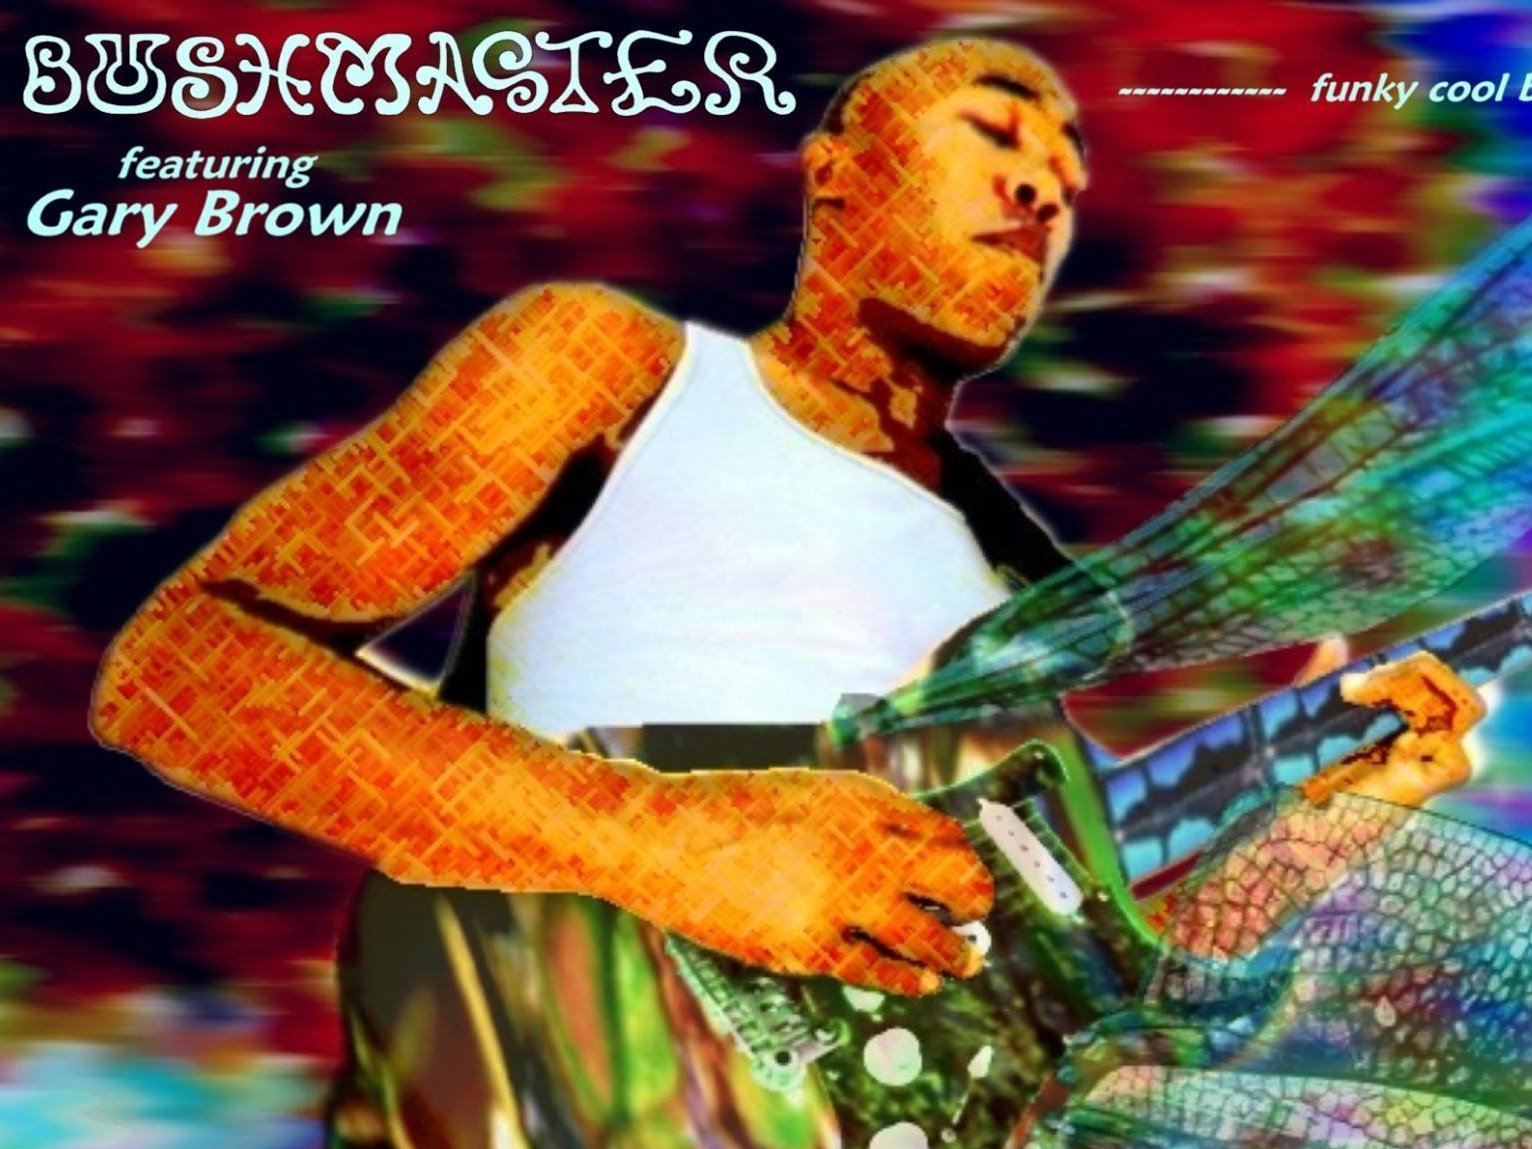 Image for Bushmaster featuring Gary Brown